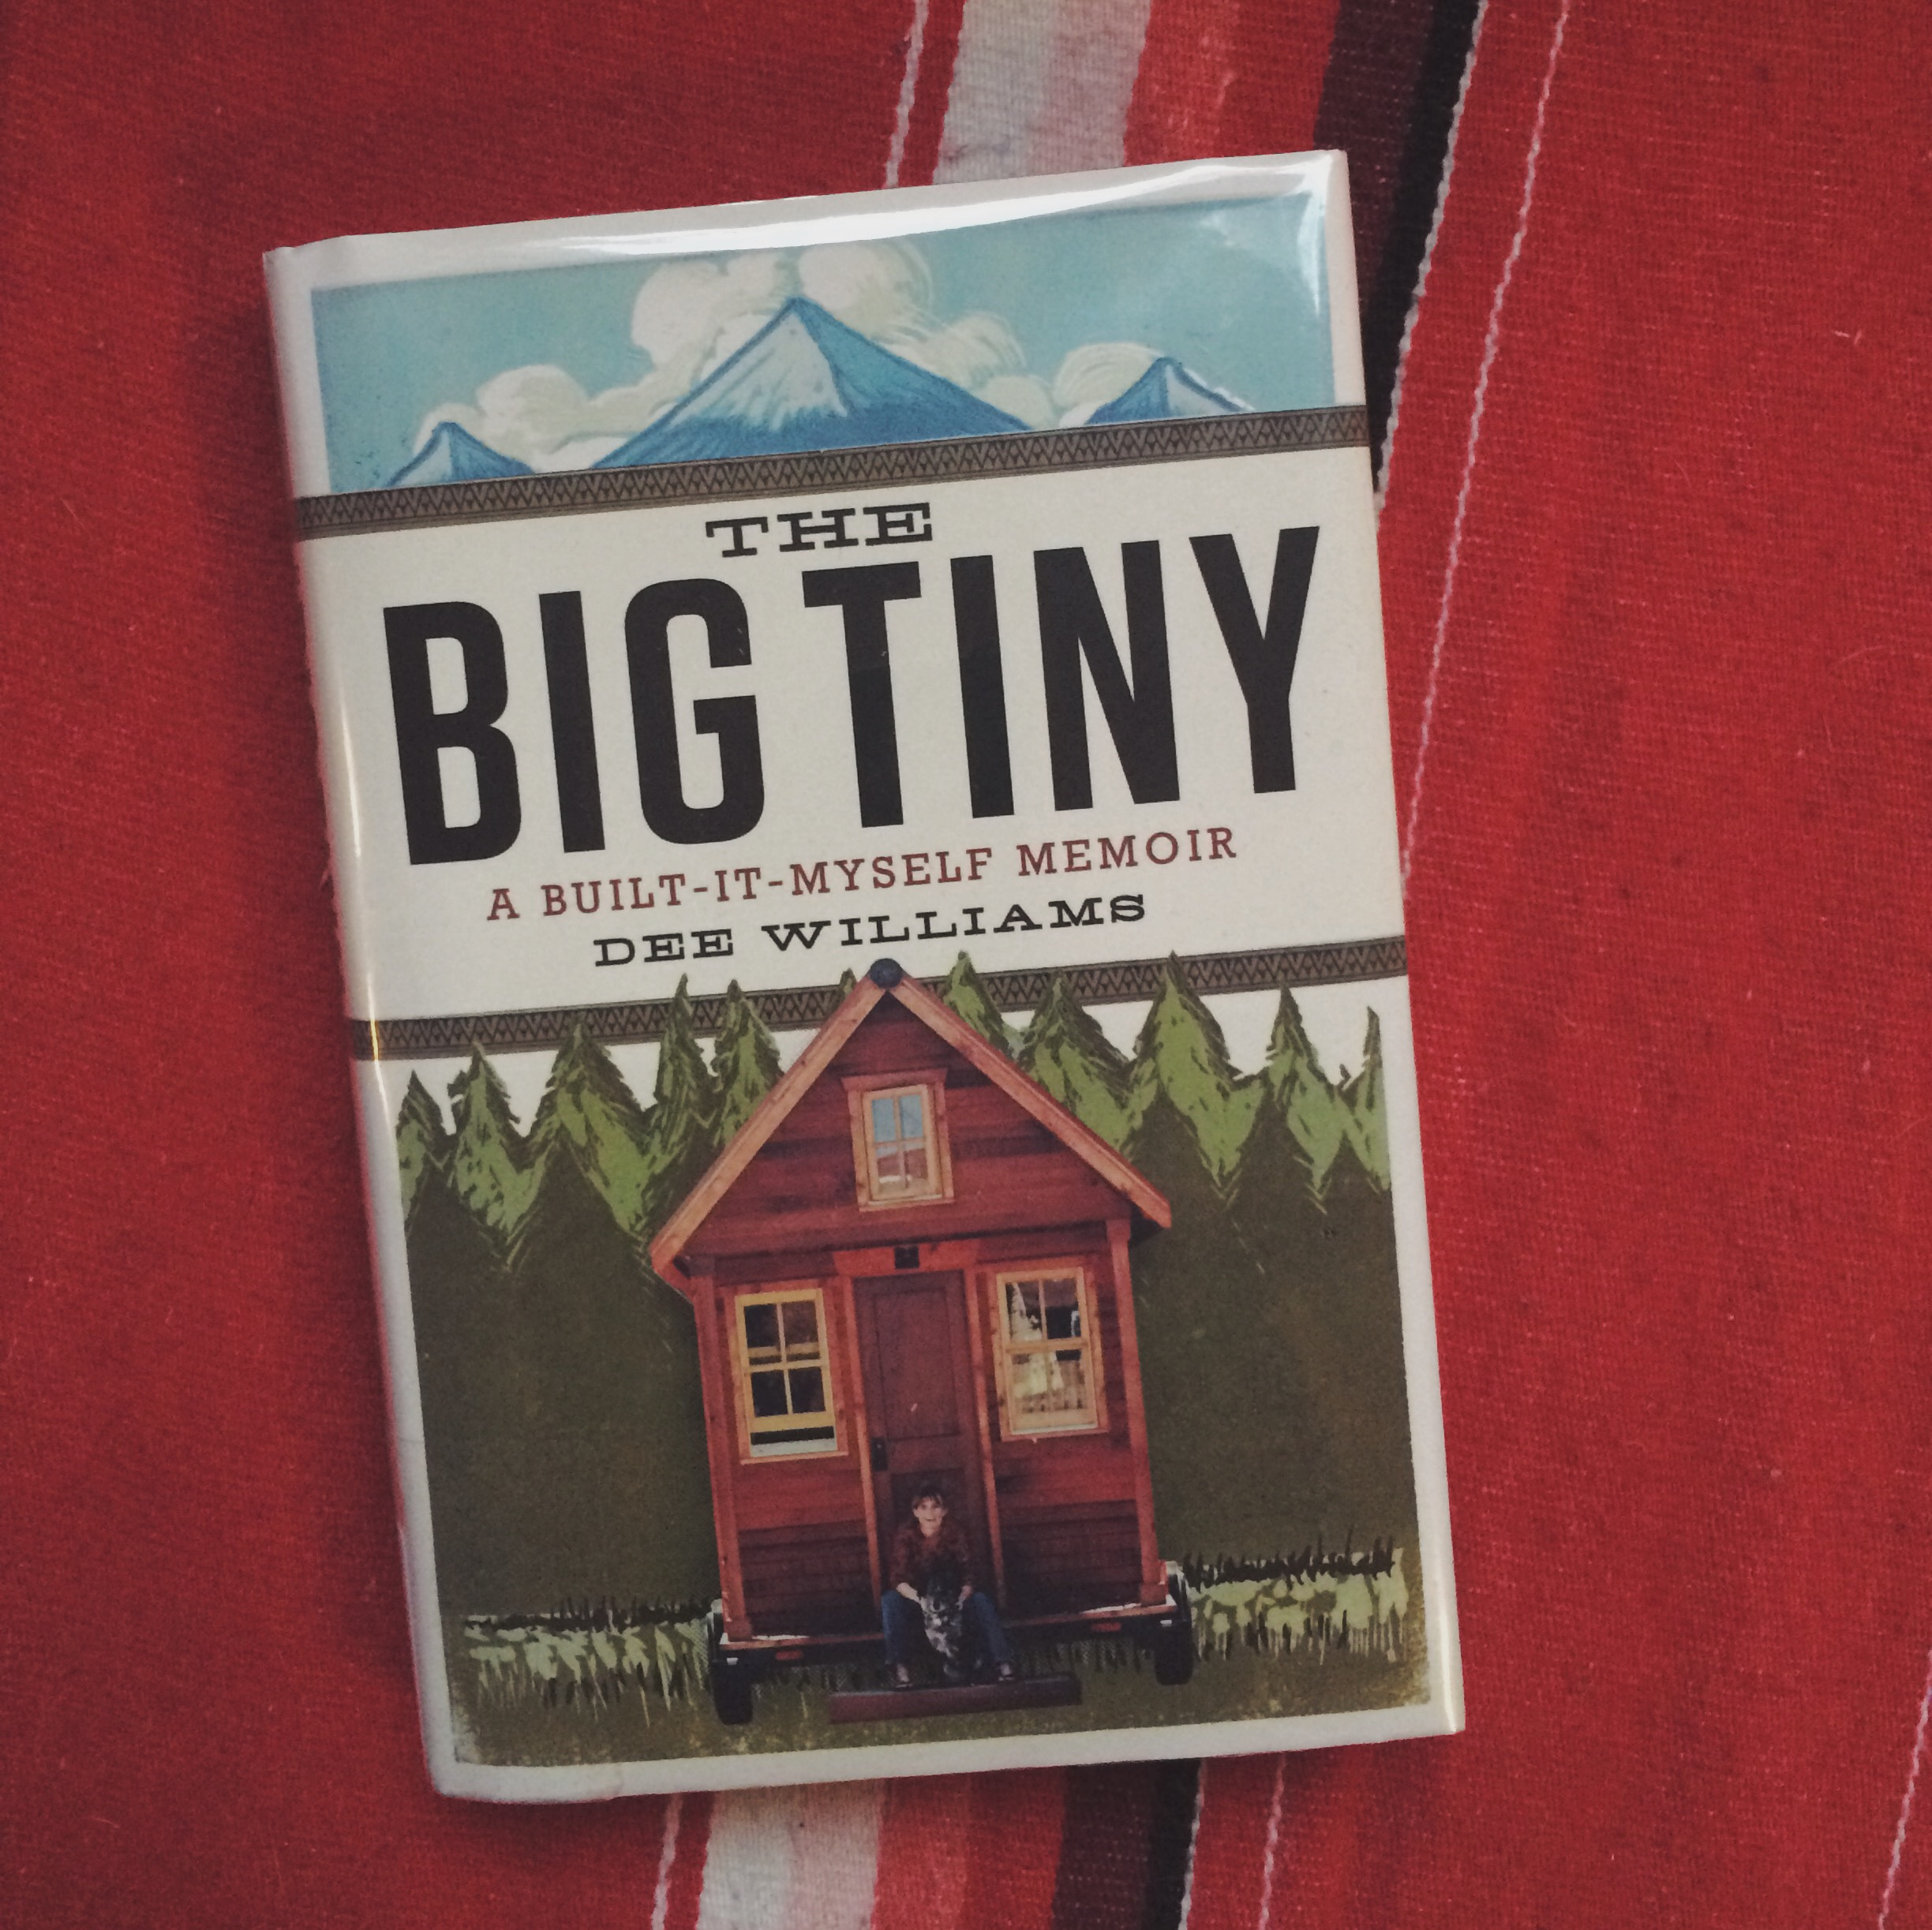 Book review the big tiny a build it myself memoir a small life book review the big tiny a build it myself memoir solutioingenieria Image collections